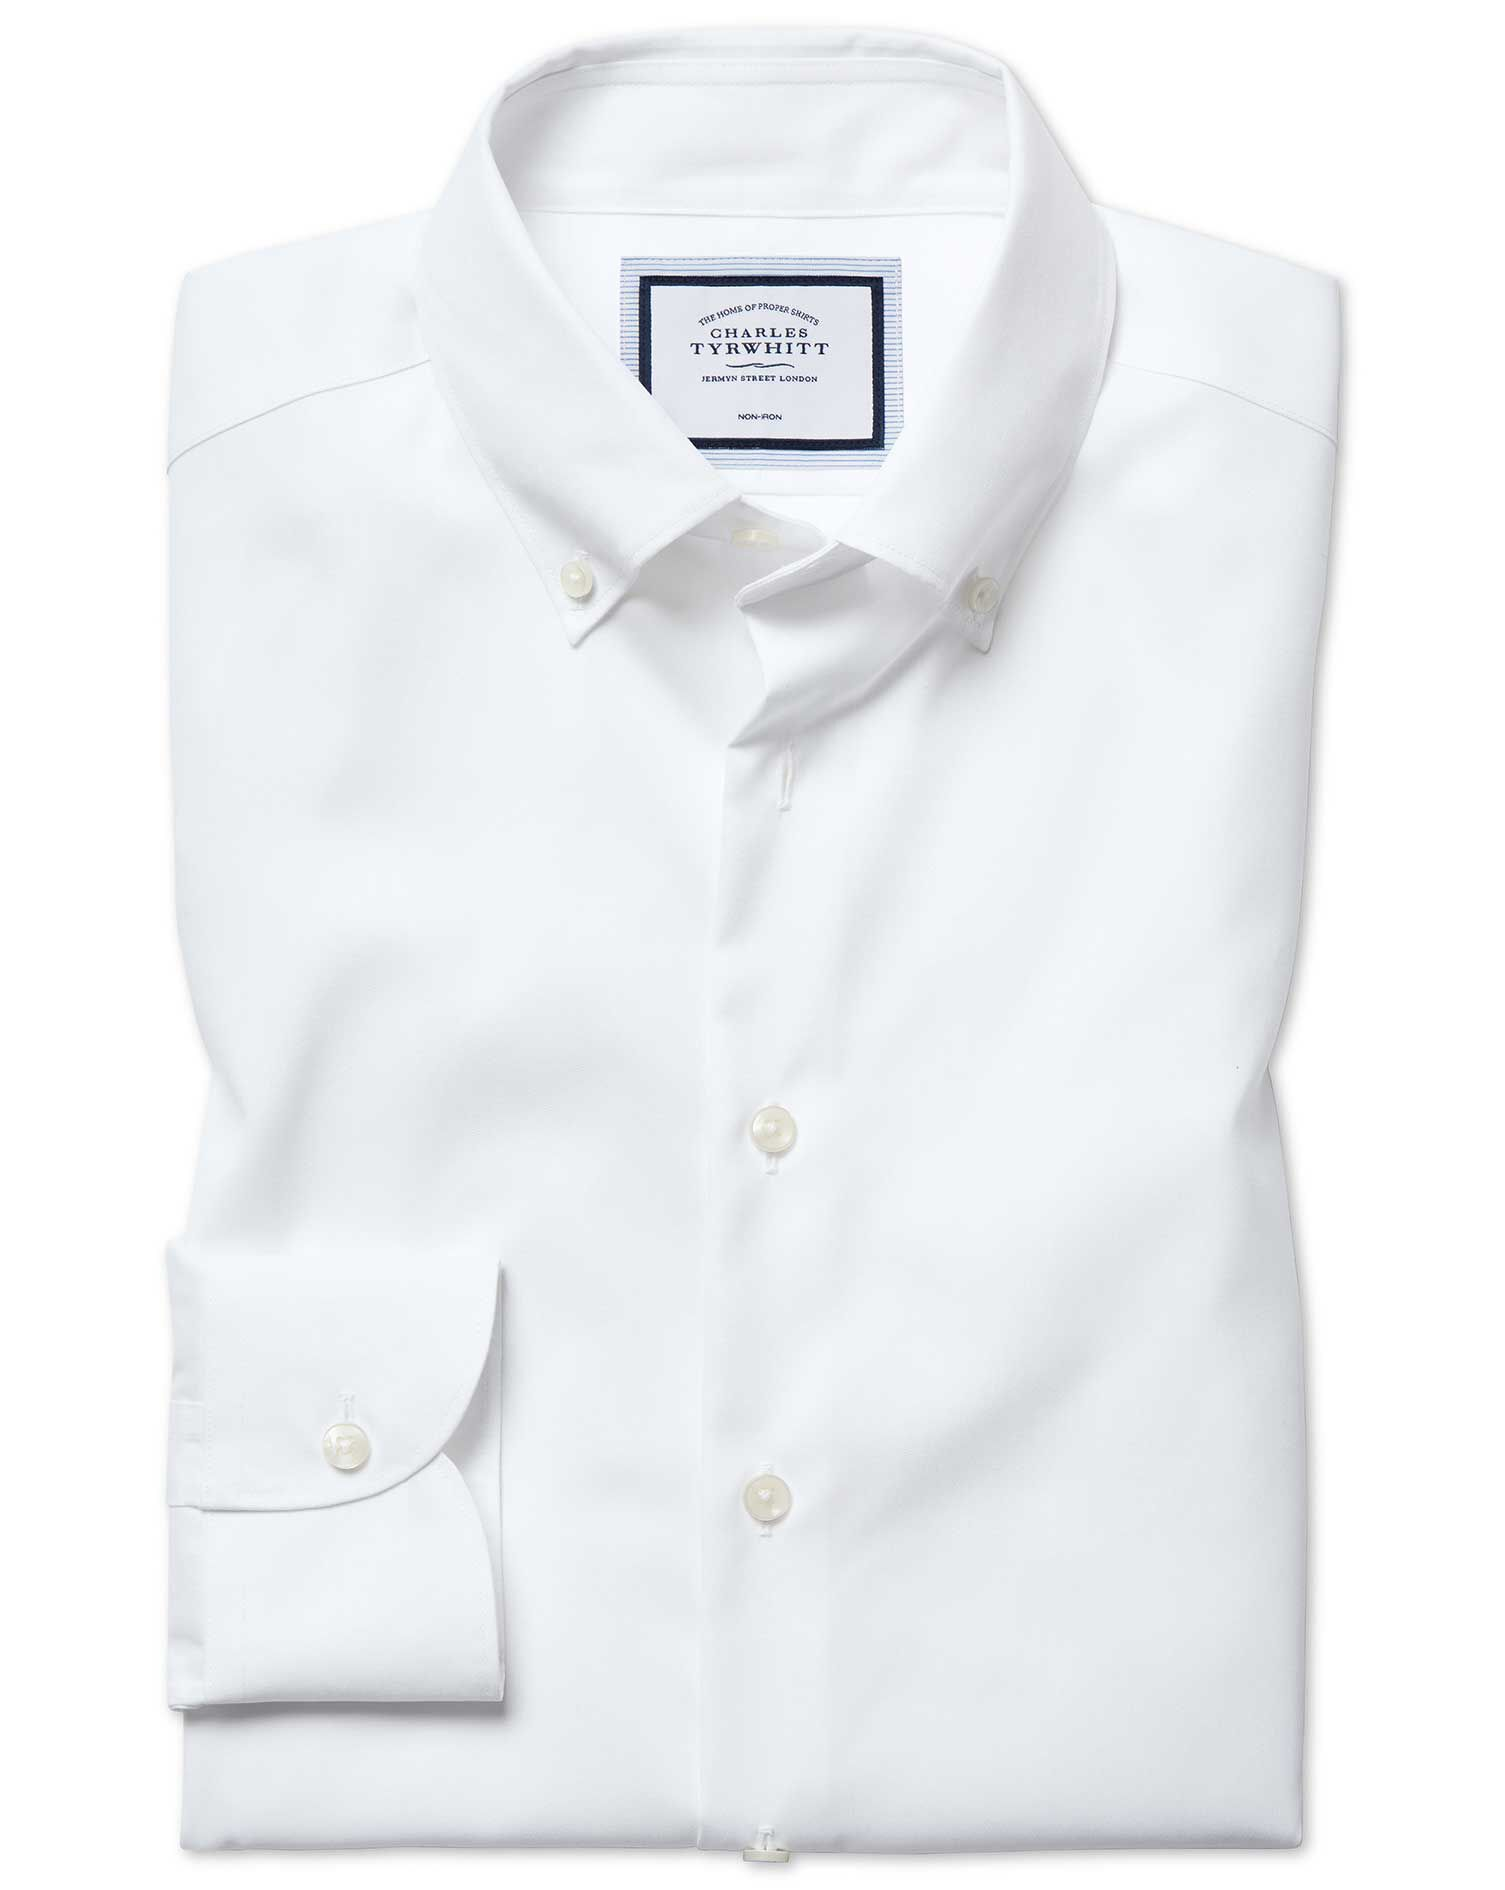 Extra Slim Fit Business Casual Non Iron Button-Down White Cotton Formal Shirt Single Cuff Size 16/32